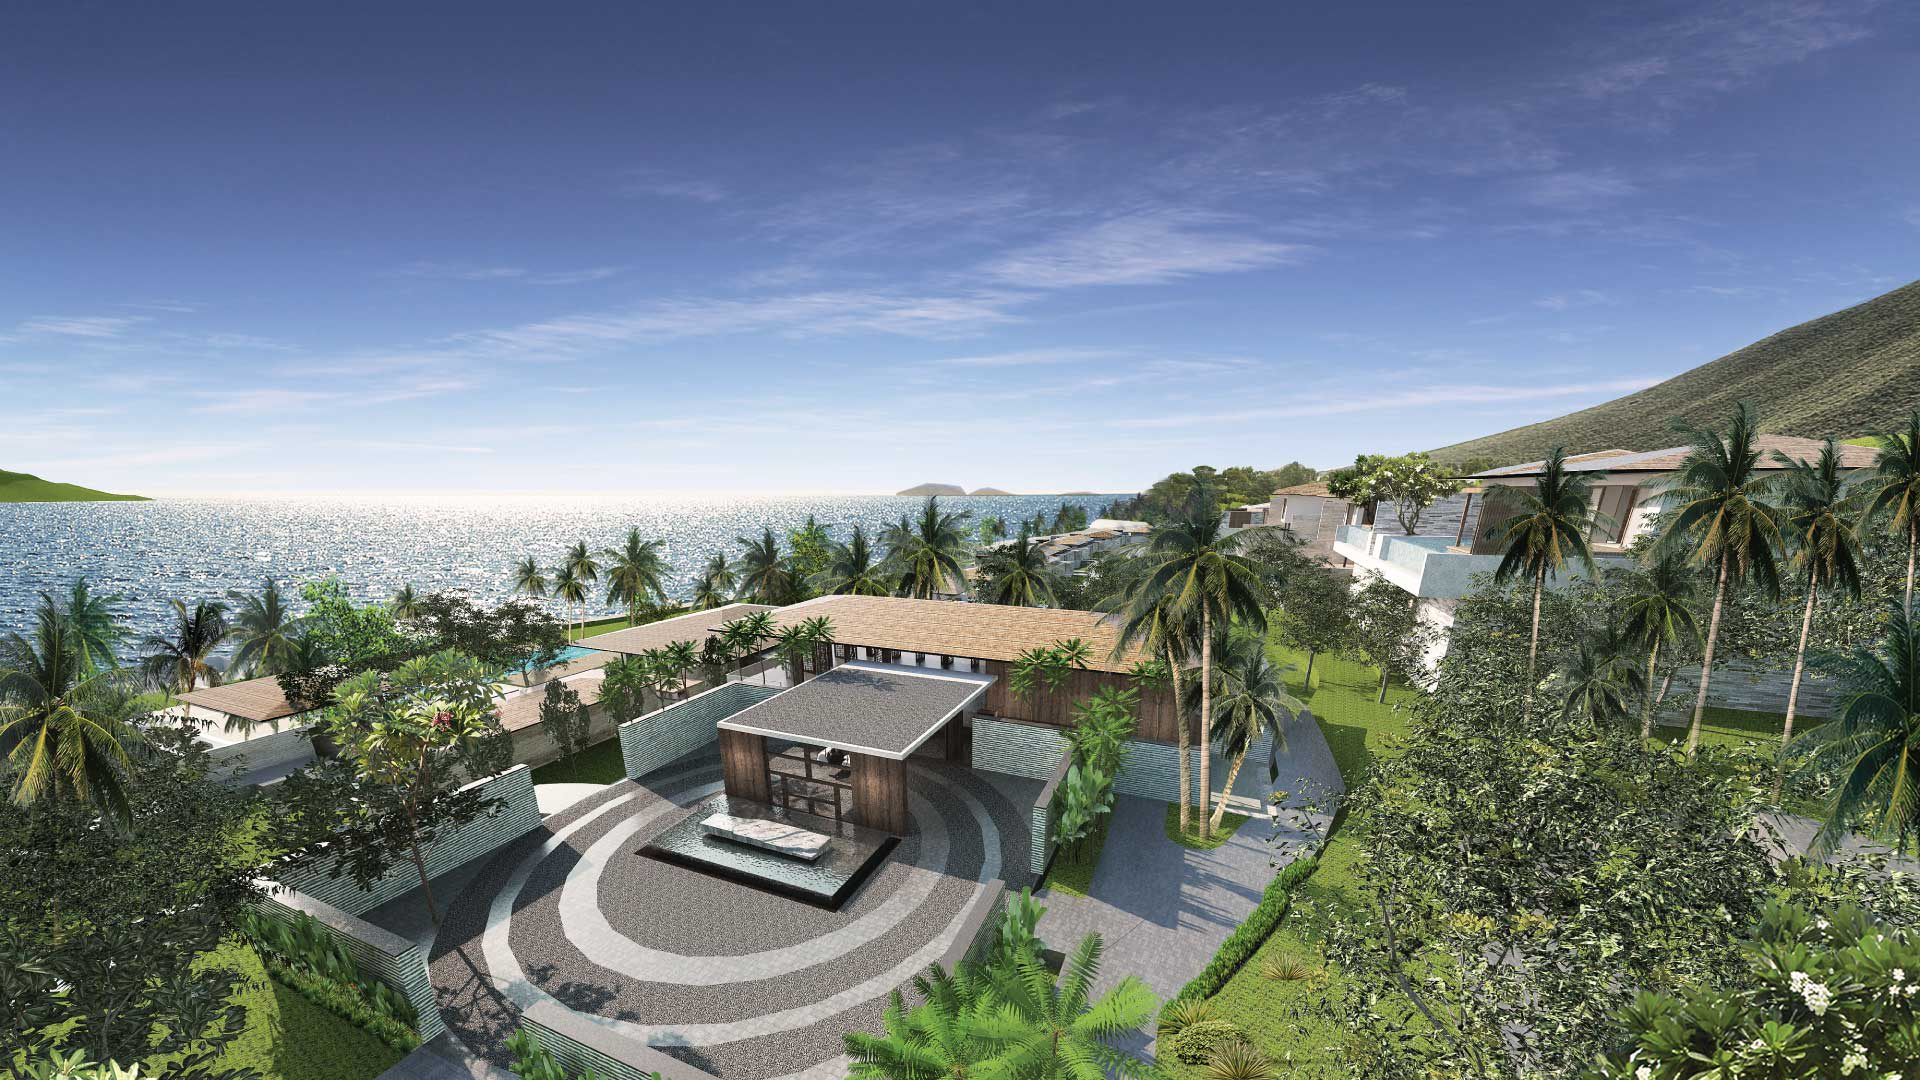 https://assets.anantara.com/image/upload/q_auto/media/minor/anantara/images/anantara-quy-nhon-villas/the-resort/anantara_quynhon_header_banner_1920x1080.jpg